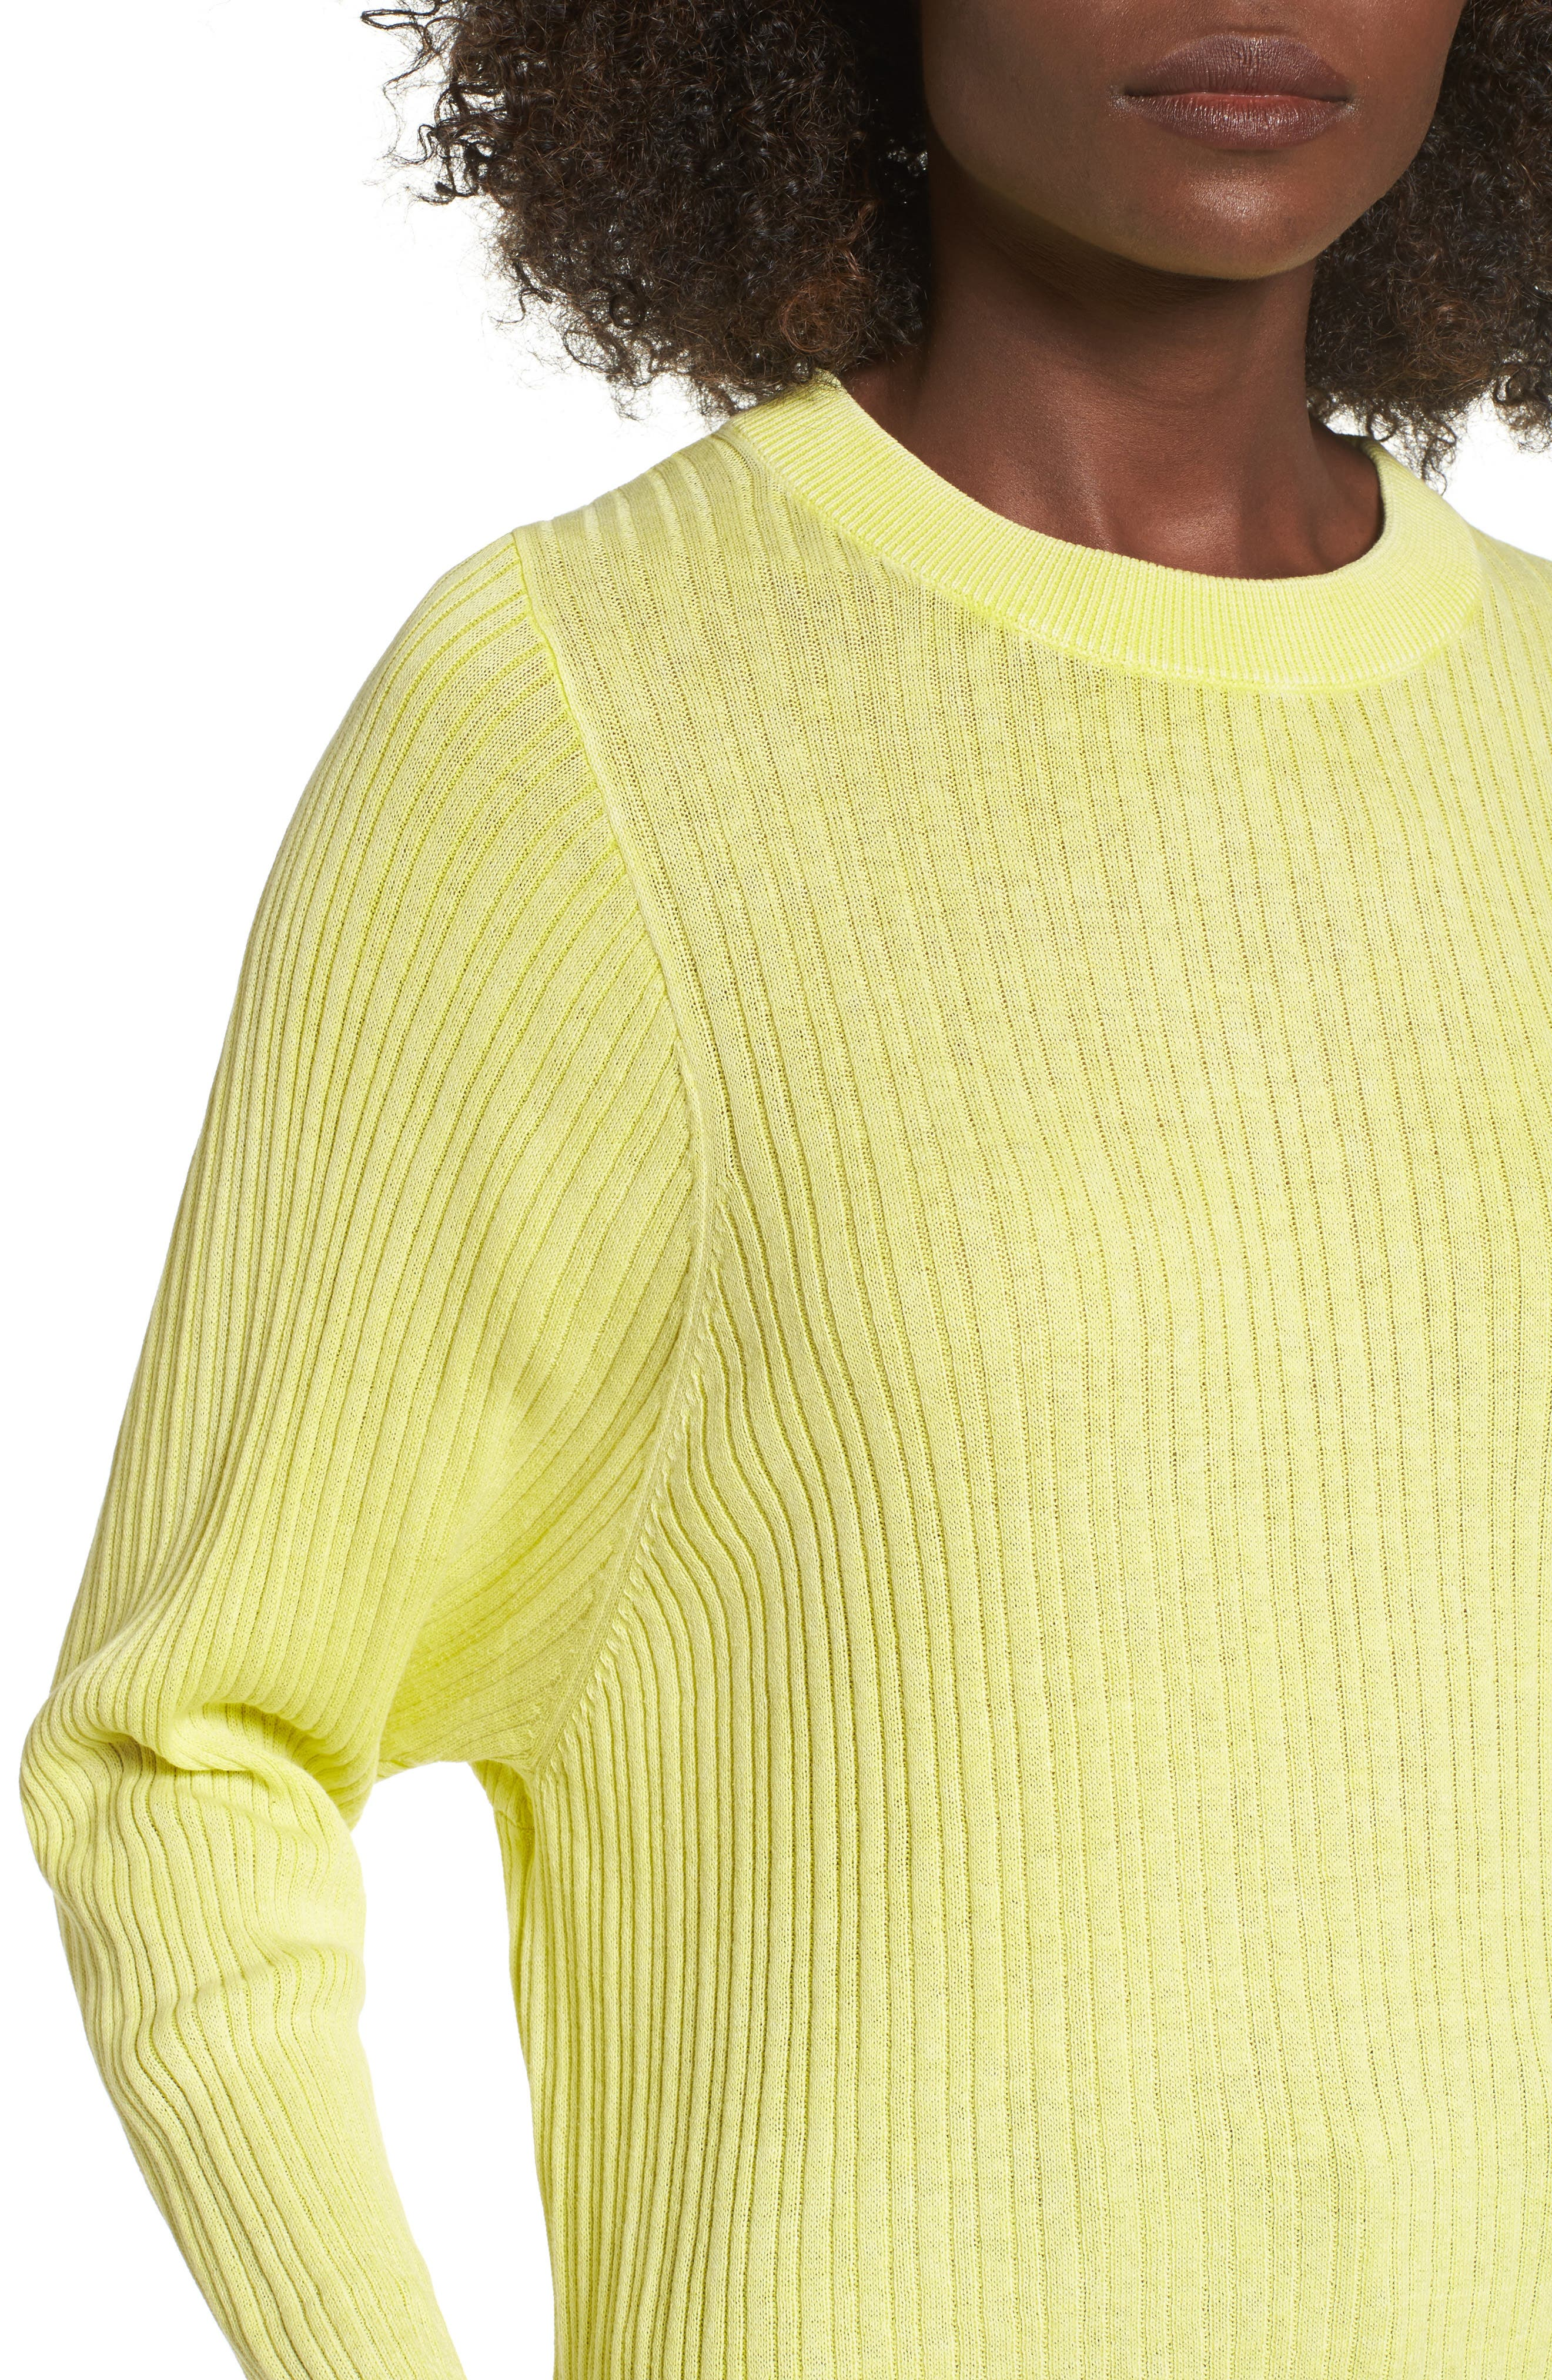 Crewneck Variegated Rib-Knit Sweater,                             Alternate thumbnail 4, color,                             Green Sulphur